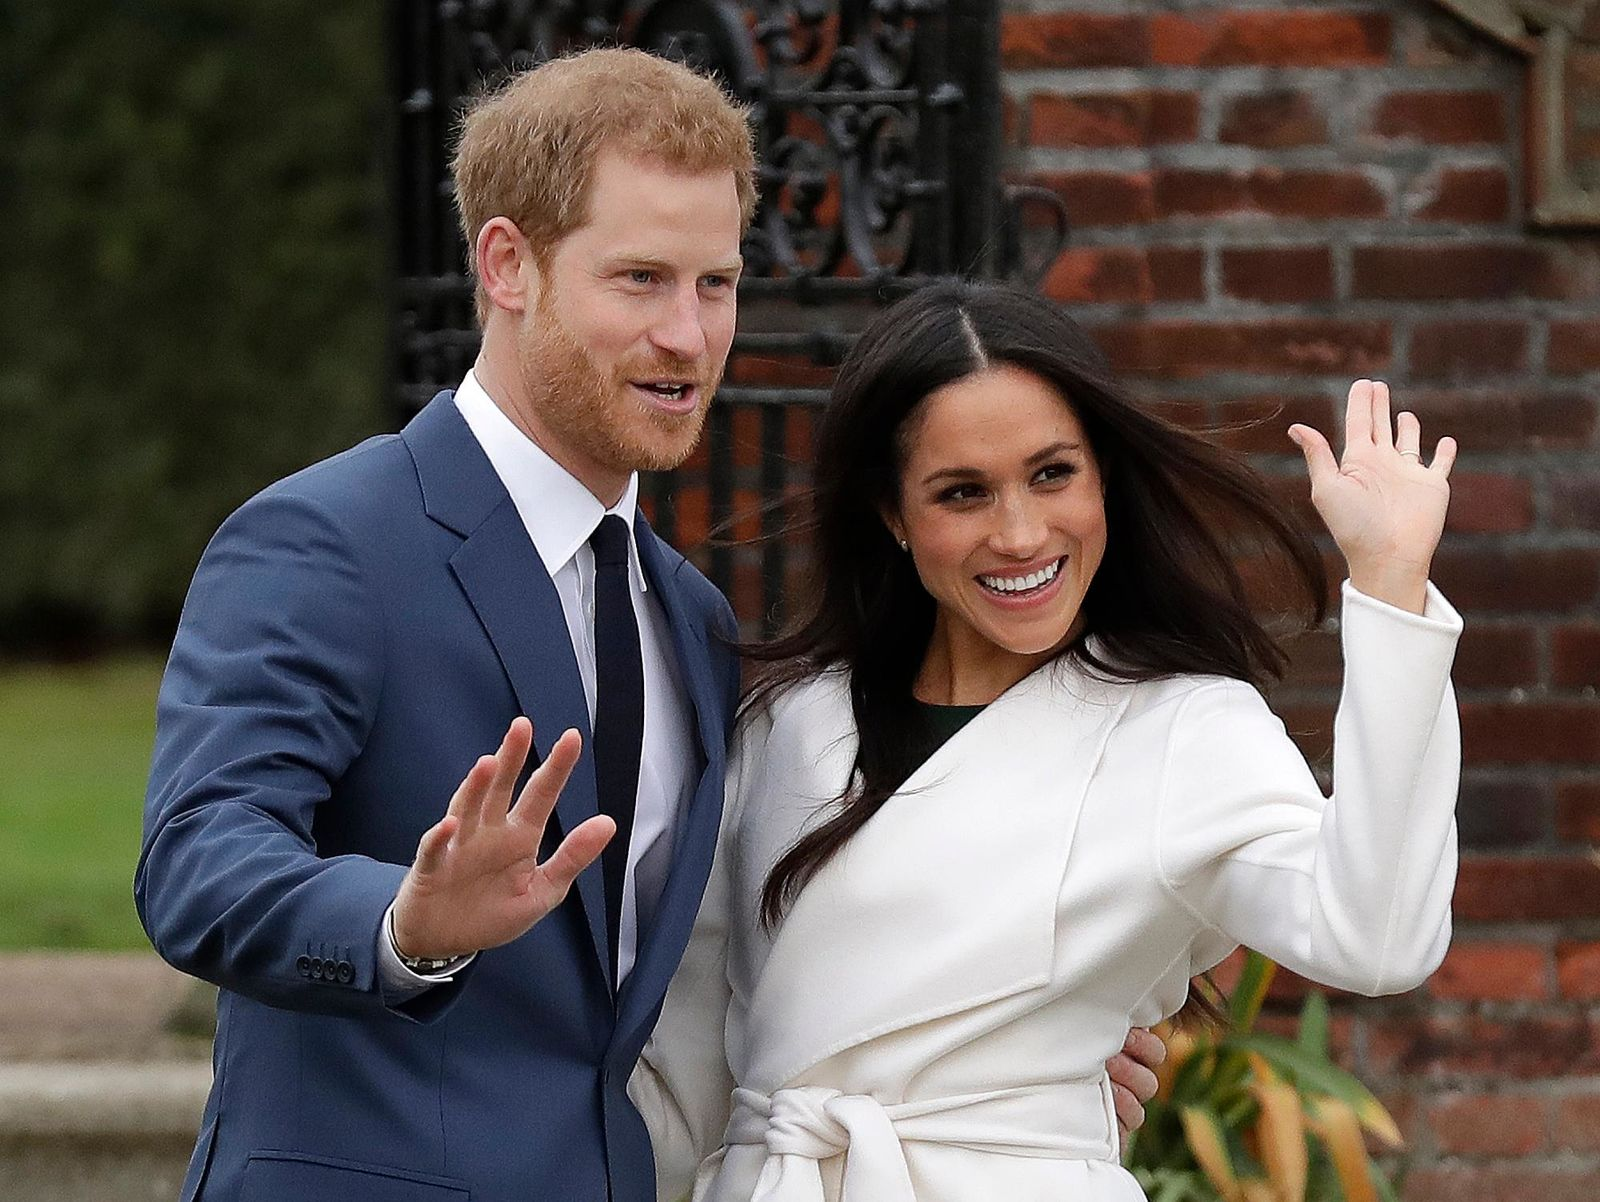 FILE - In this Monday, Nov. 27, 2017 file photo, Britain's Prince Harry and his fiancee Meghan Markle pose for photographers during a photocall in the grounds of Kensington Palace in London.{ } (AP Photo/Matt Dunham, File)